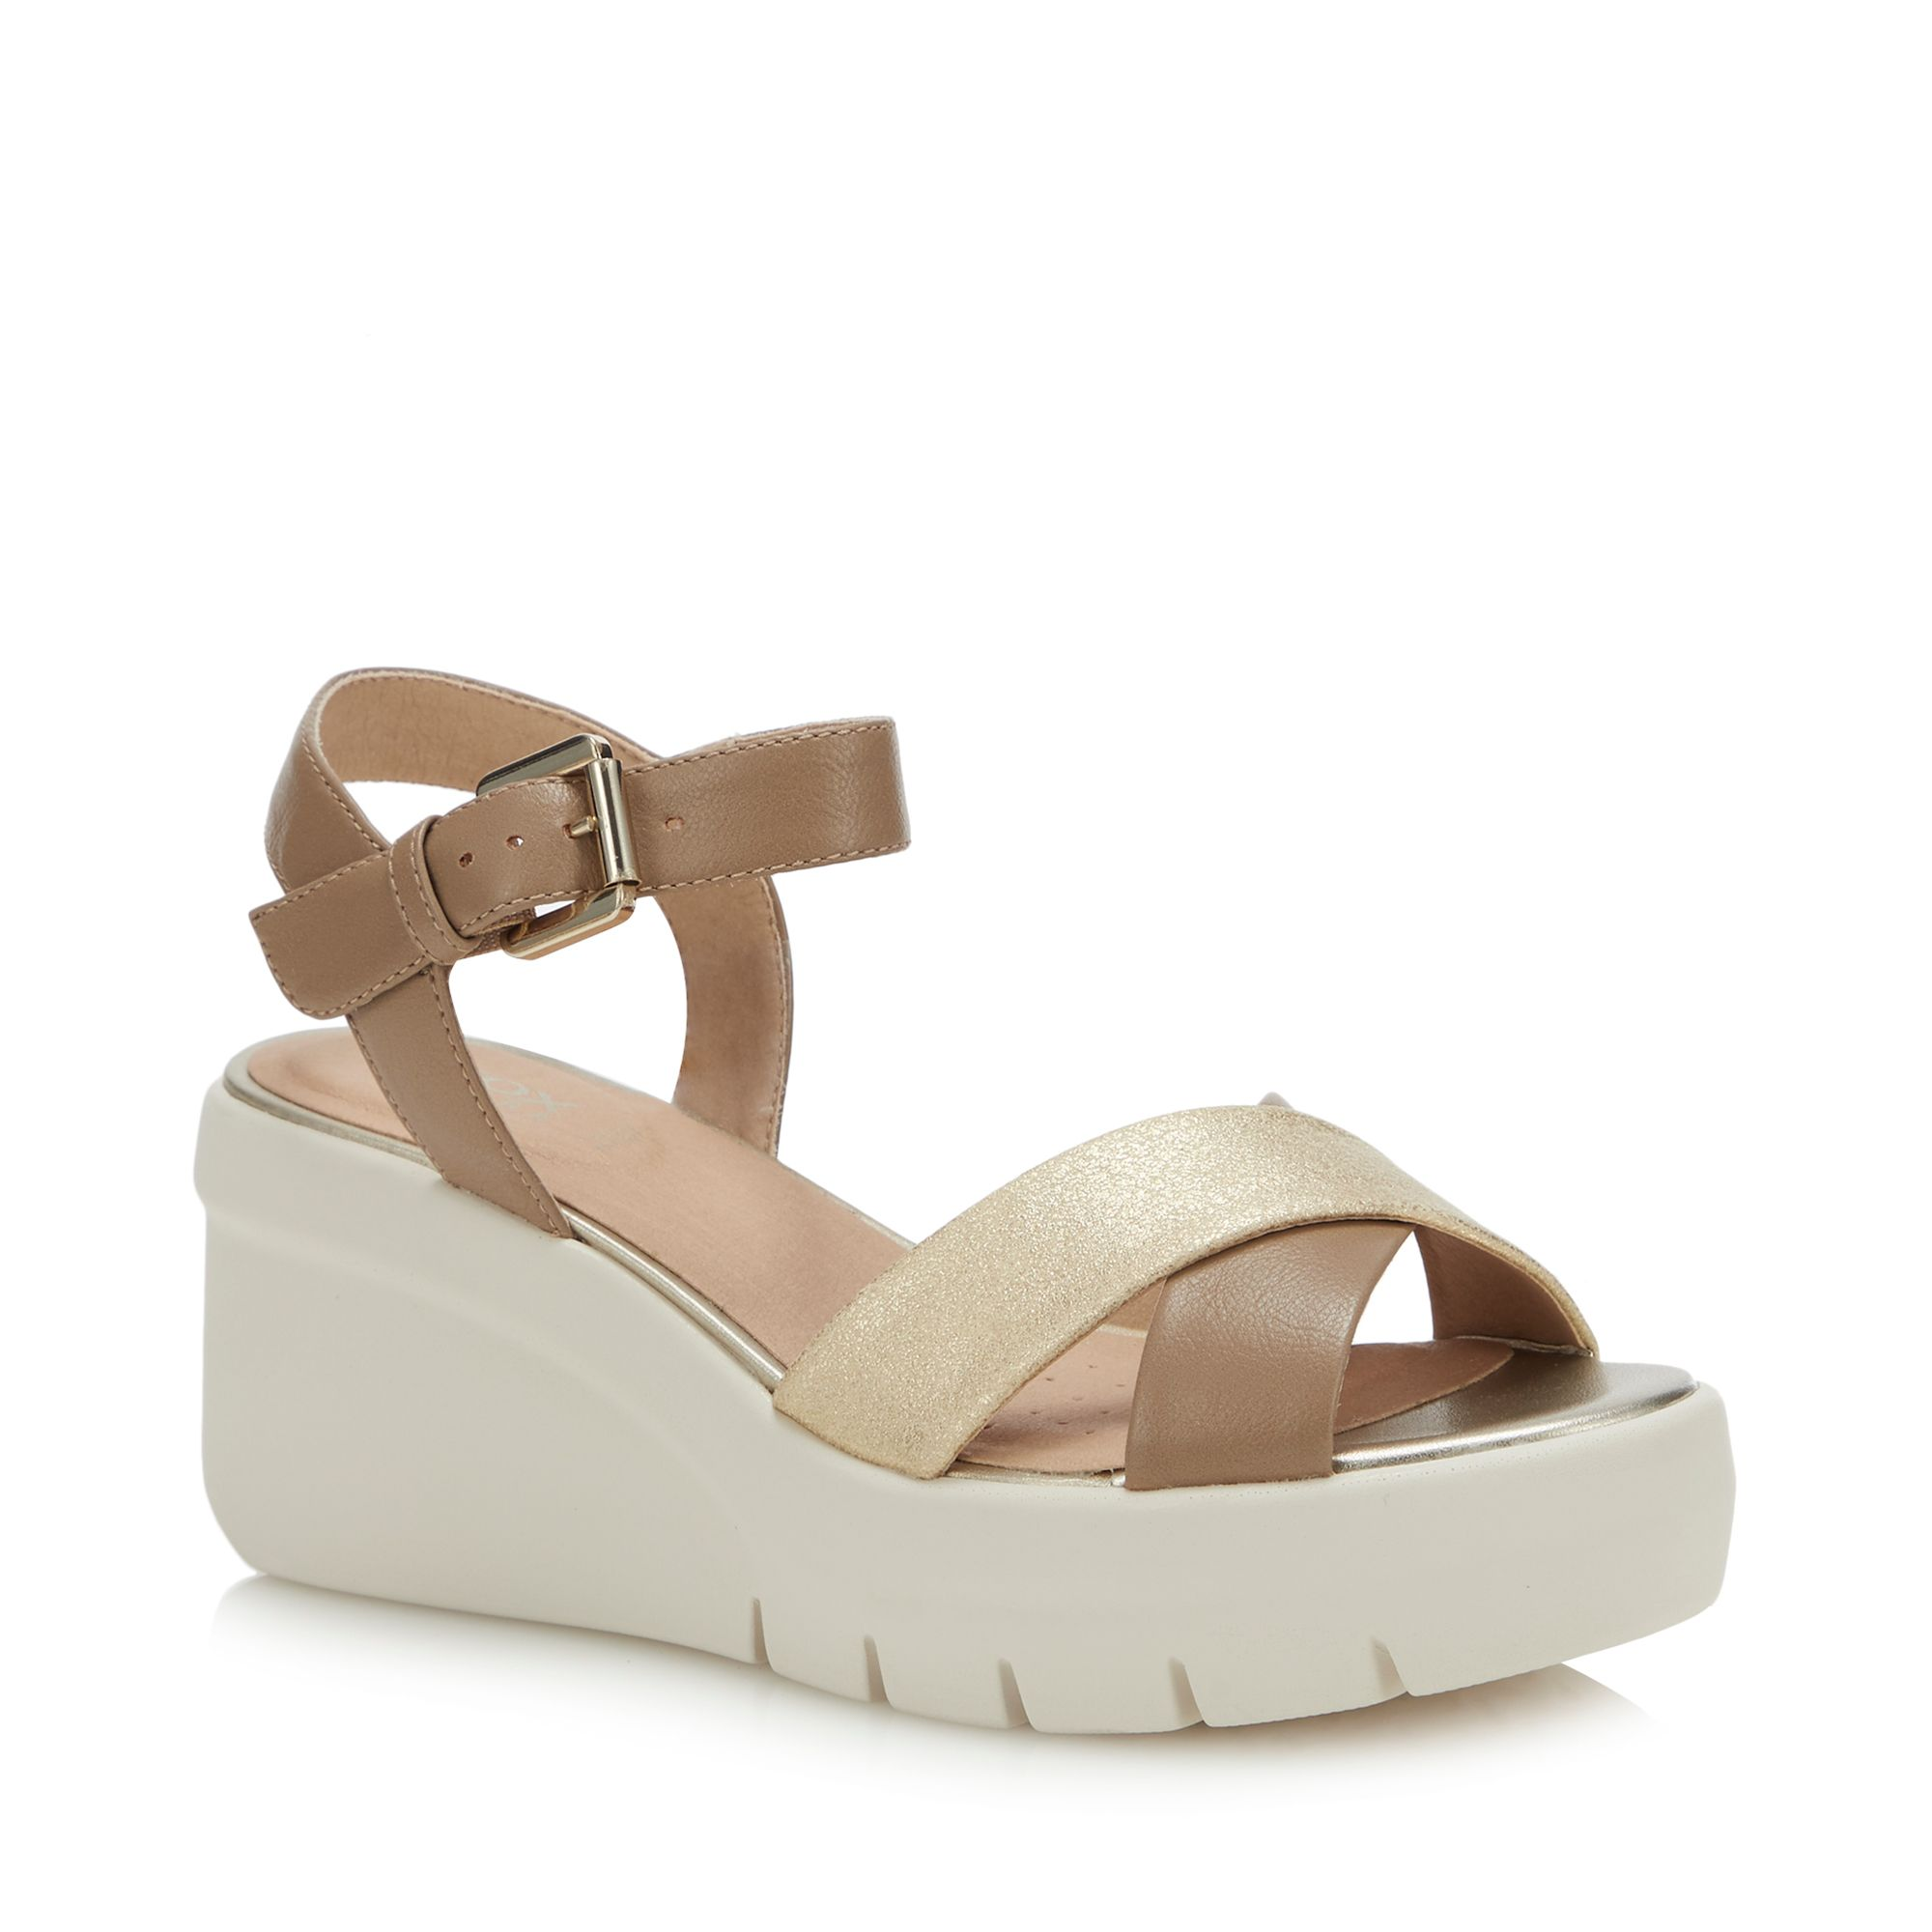 842b09fff4 Details about Geox Womens Nude 'Torrence' Wedge Heel Sandals